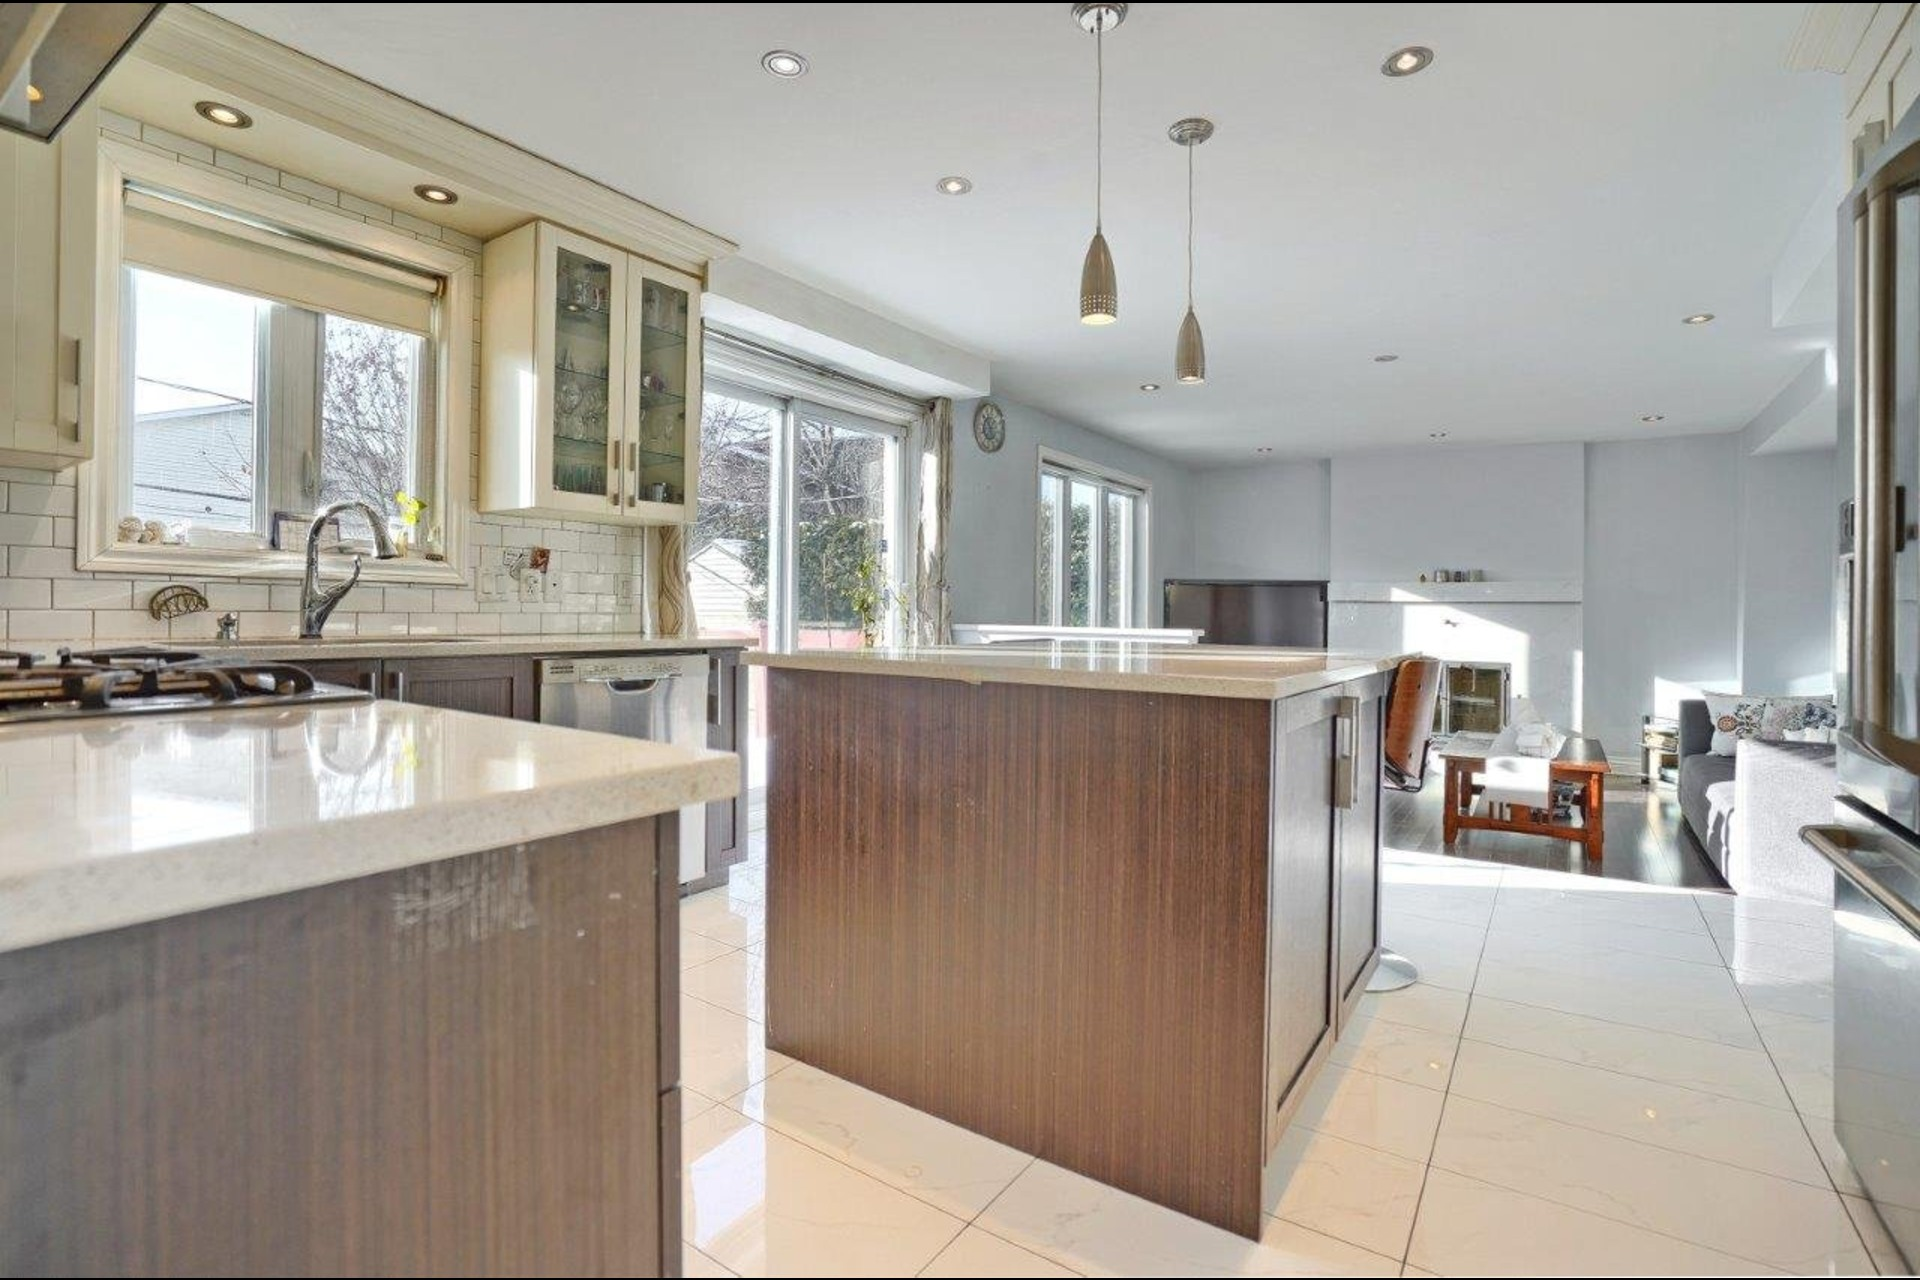 image 5 - House For sale Brossard - 14 rooms